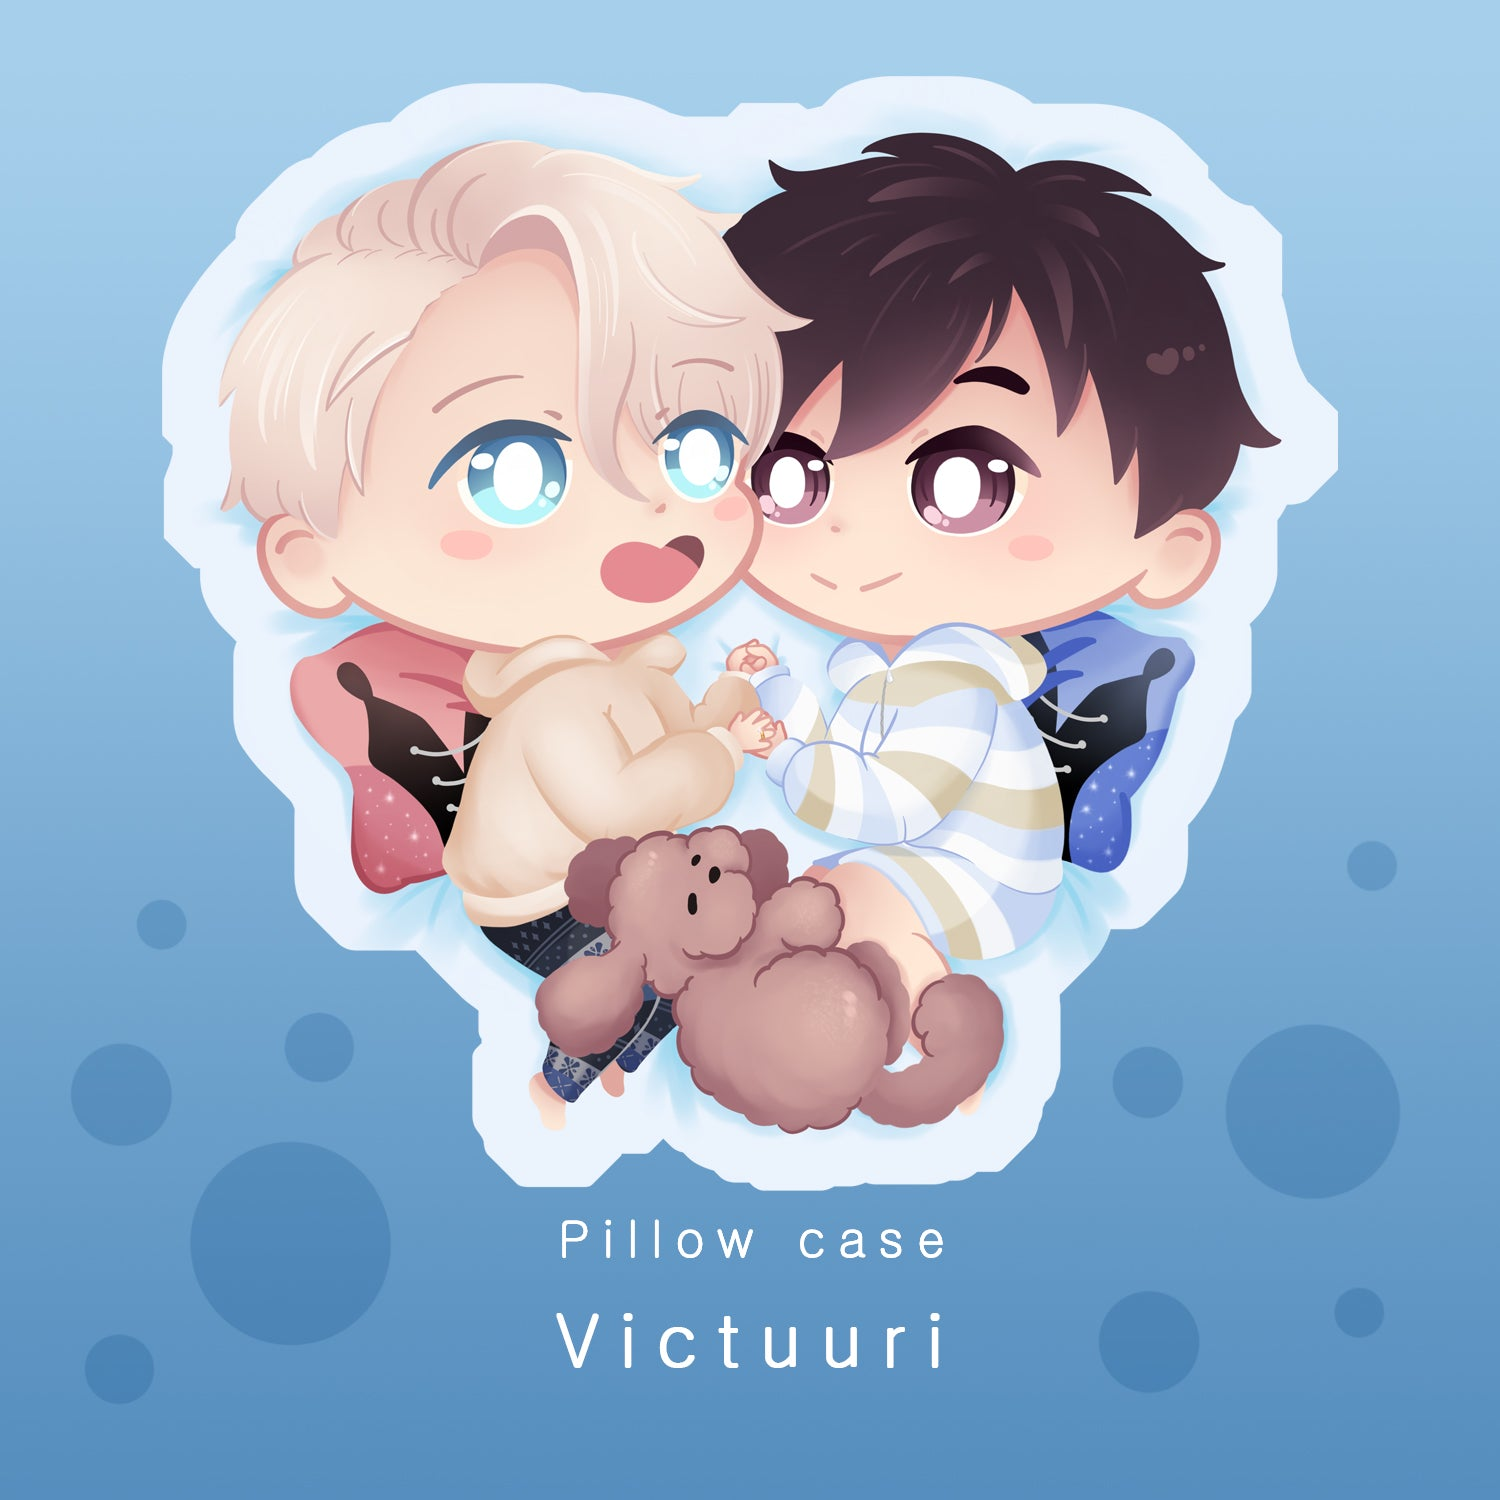 [Yuri!!! on Ice] Victuuri - Pillow case - 2nd batch